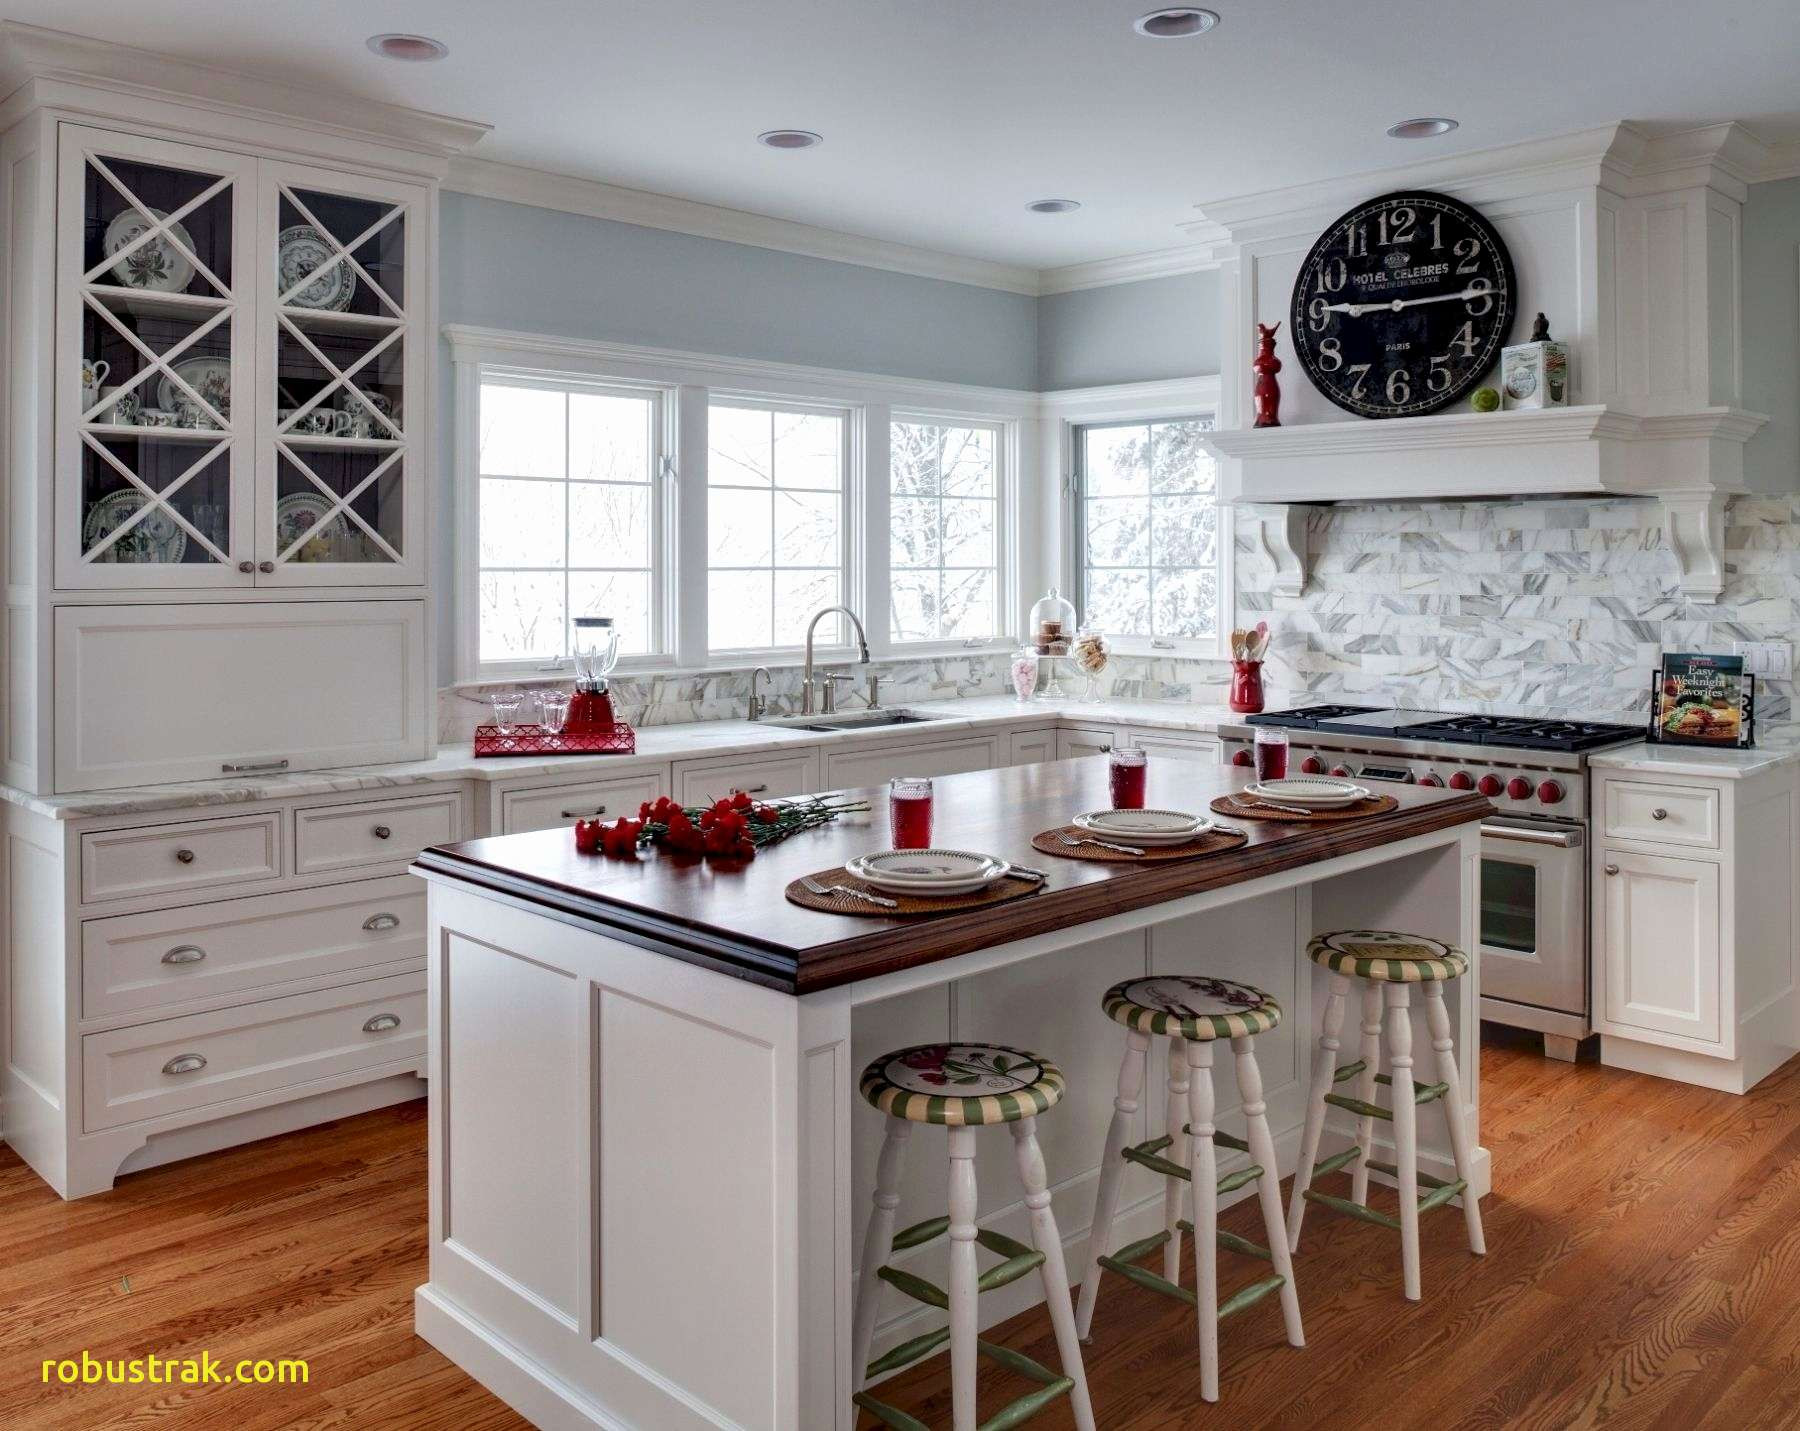 home depot unfinished red oak hardwood flooring of inspirational oak kitchen cabinets home design ideas within kitchen designs ideas beautiful white kitchen design lovely h sink kitchen vent i 0d awesome clean kitchen designs ideas new home depot unfinished wood